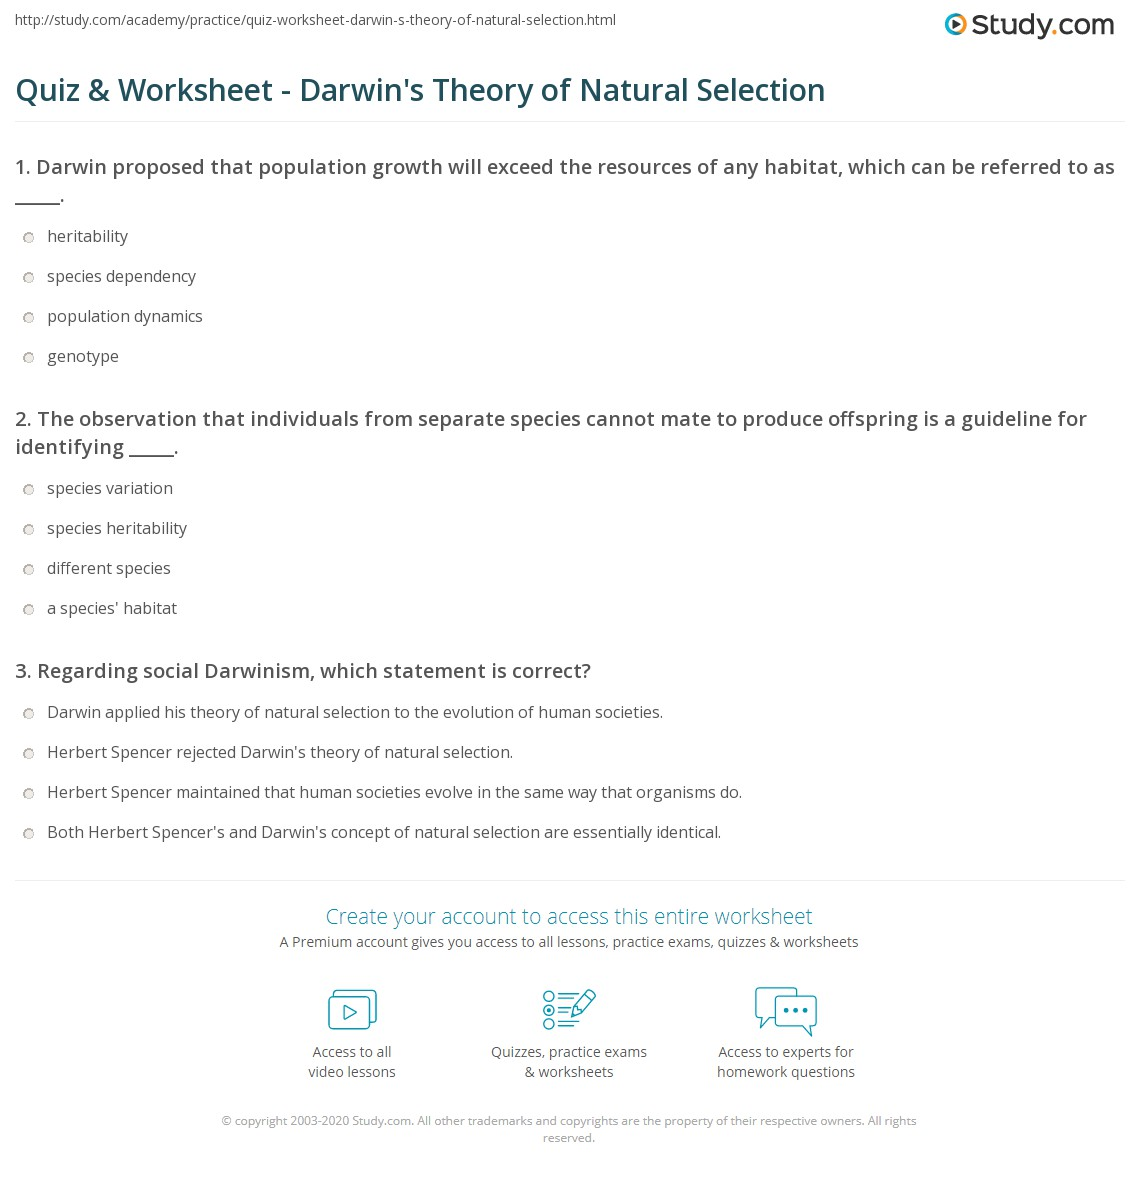 quiz worksheet darwin 39 s theory of natural selection. Black Bedroom Furniture Sets. Home Design Ideas